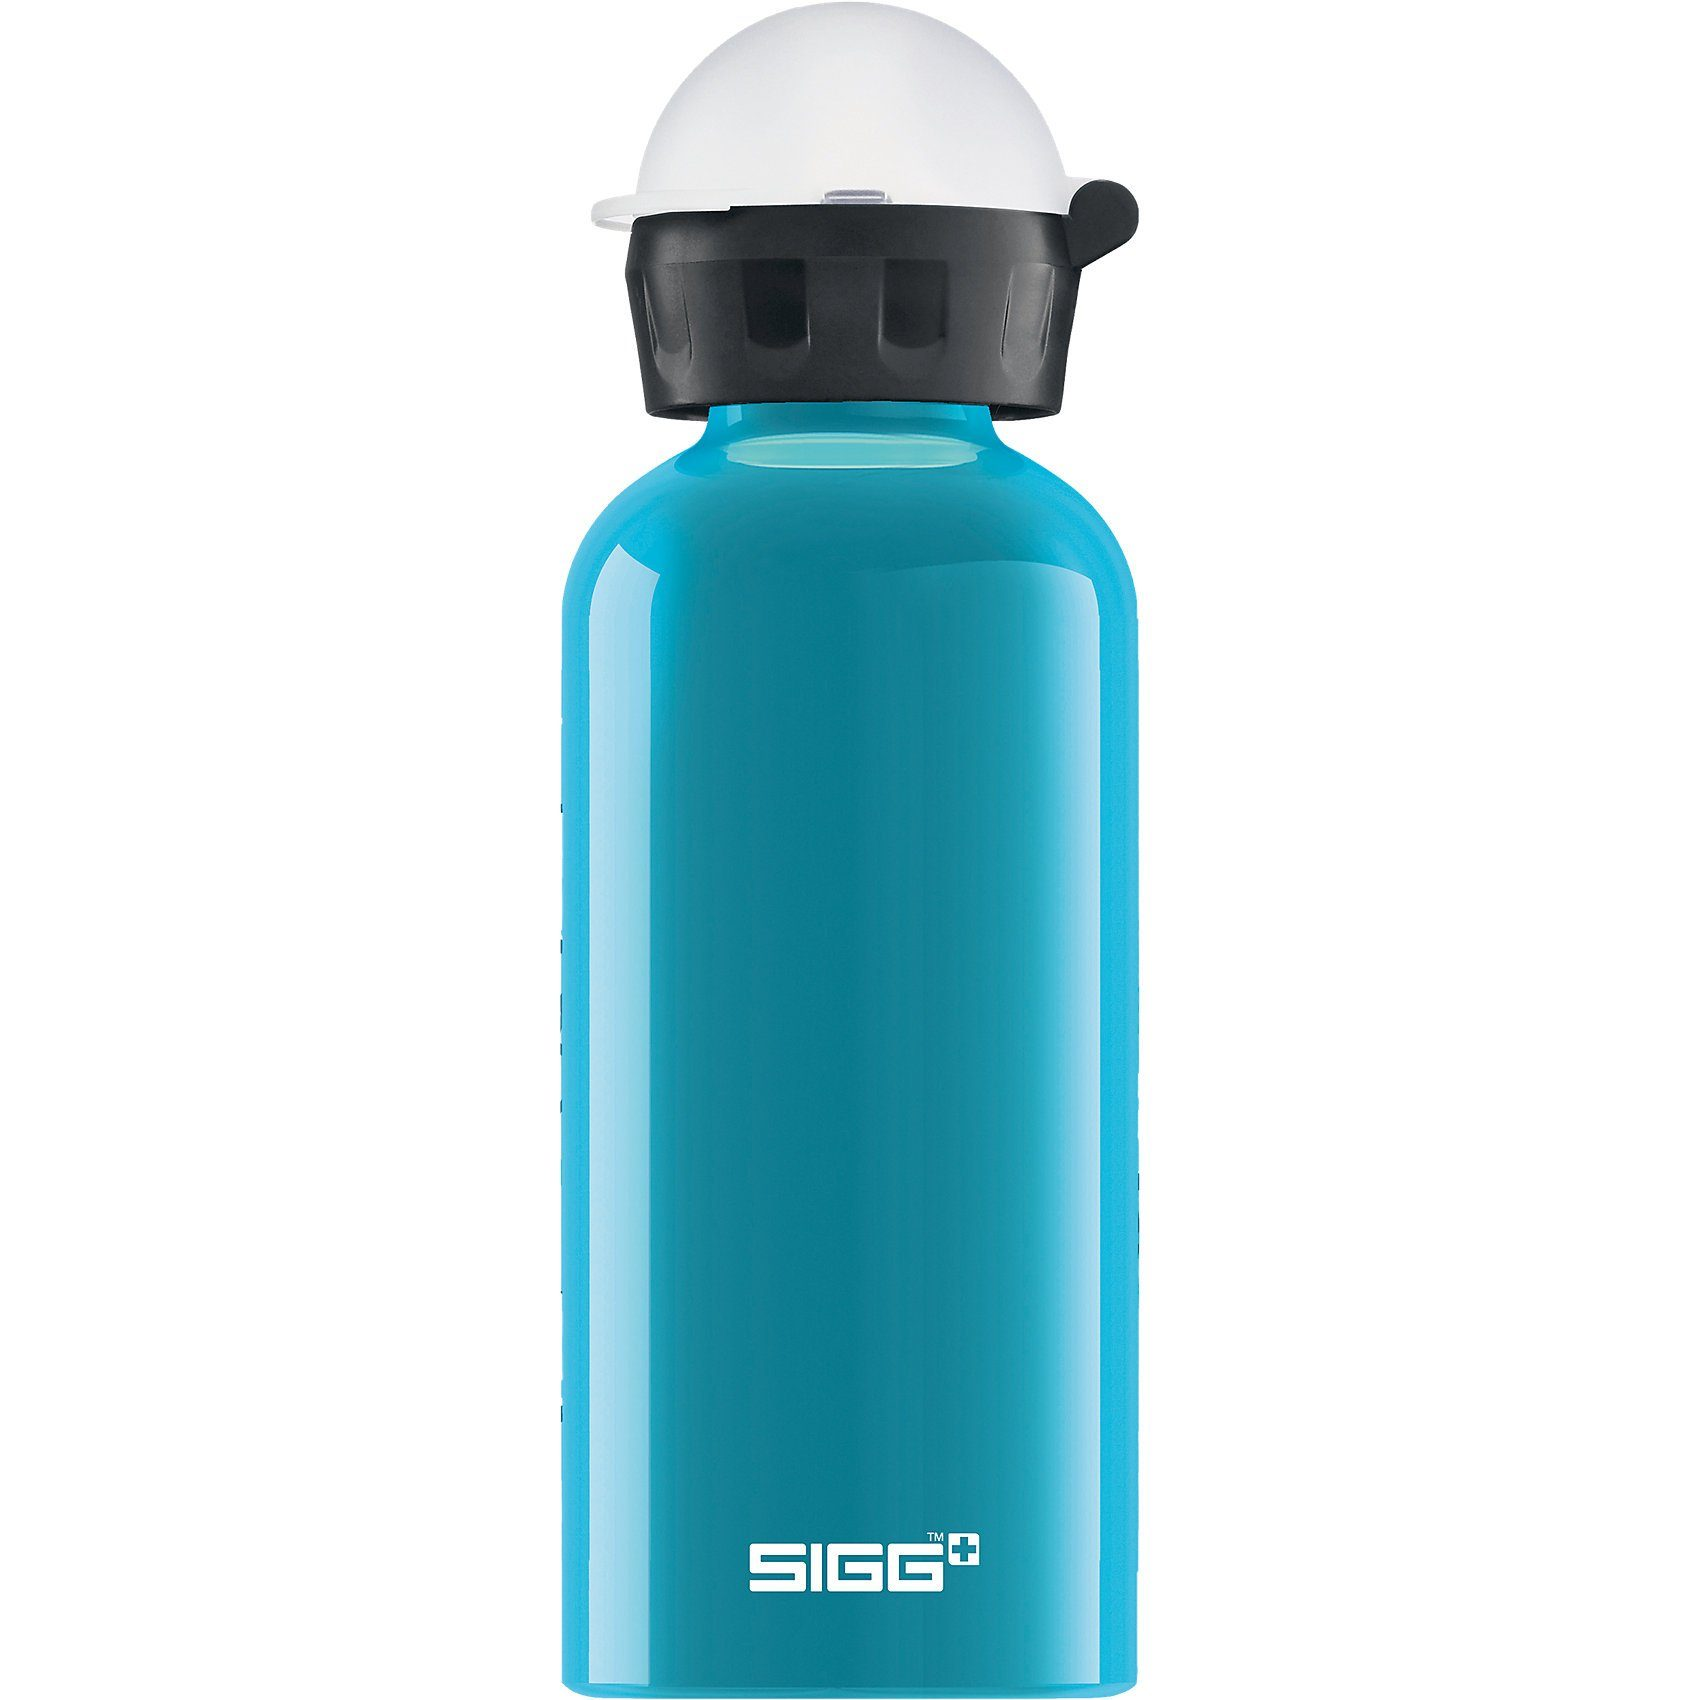 Sigg Alu-Trinkflasche KBT Waterfall, 400 ml